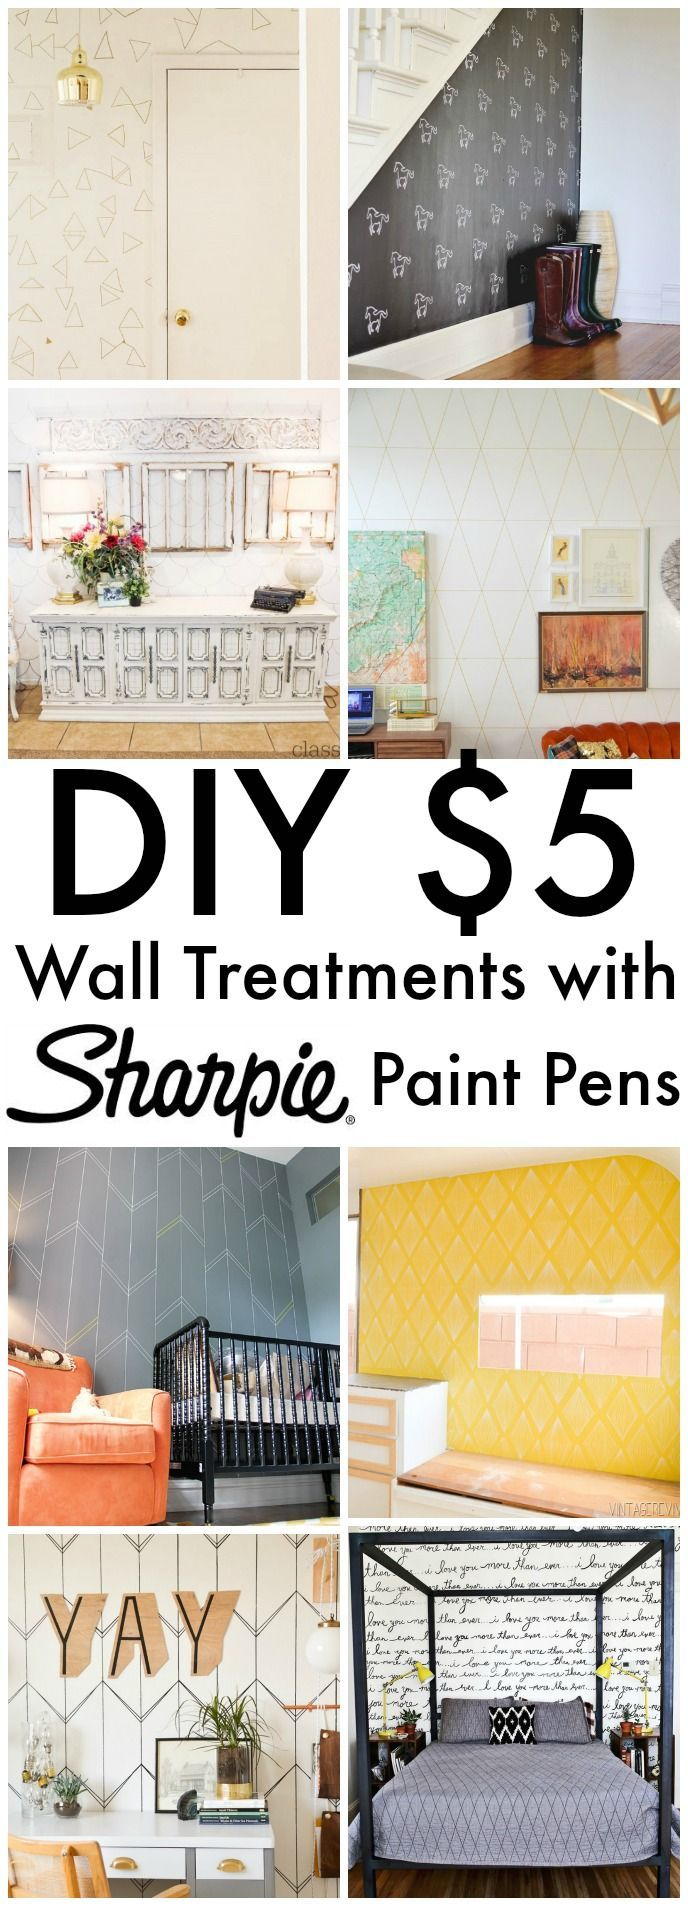 $5 Wall Treatments with Sharpie Paint Pens - This is an inexpensive way to spruce up your space. With 1-2 Paint Pens, you can totally transform any wall or any surface for that matter! Love this! Click for ideas - www.classyclutter.net